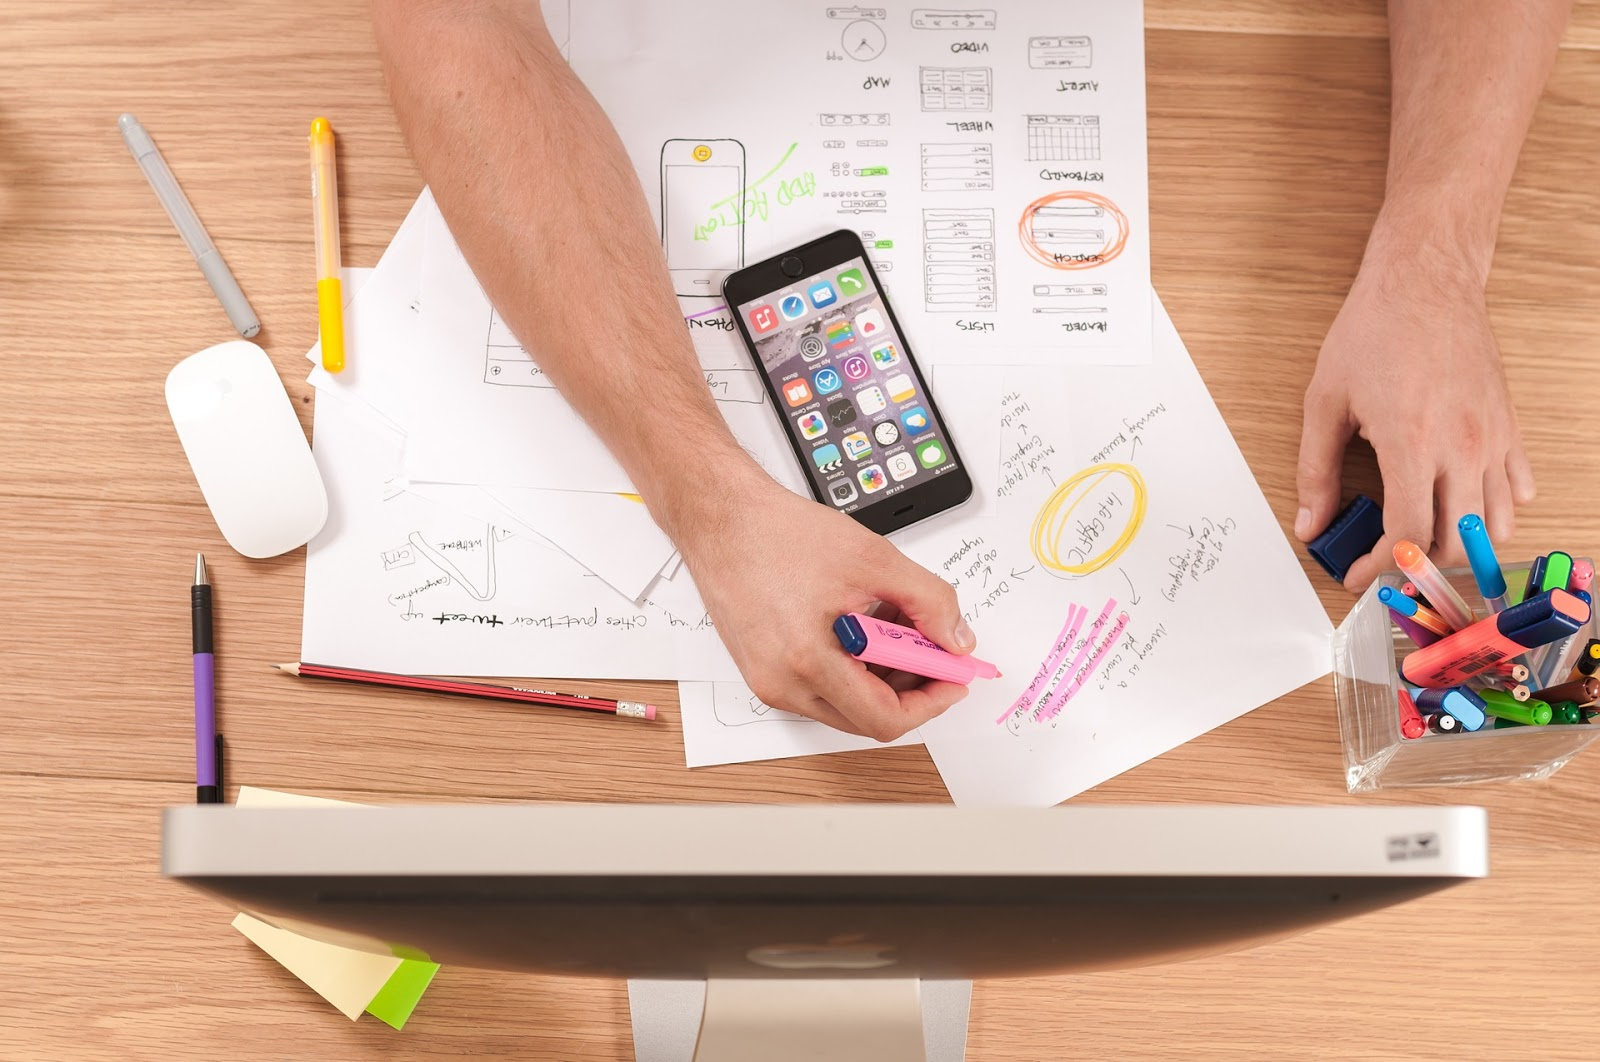 14 Apps to support Corporate Innovation